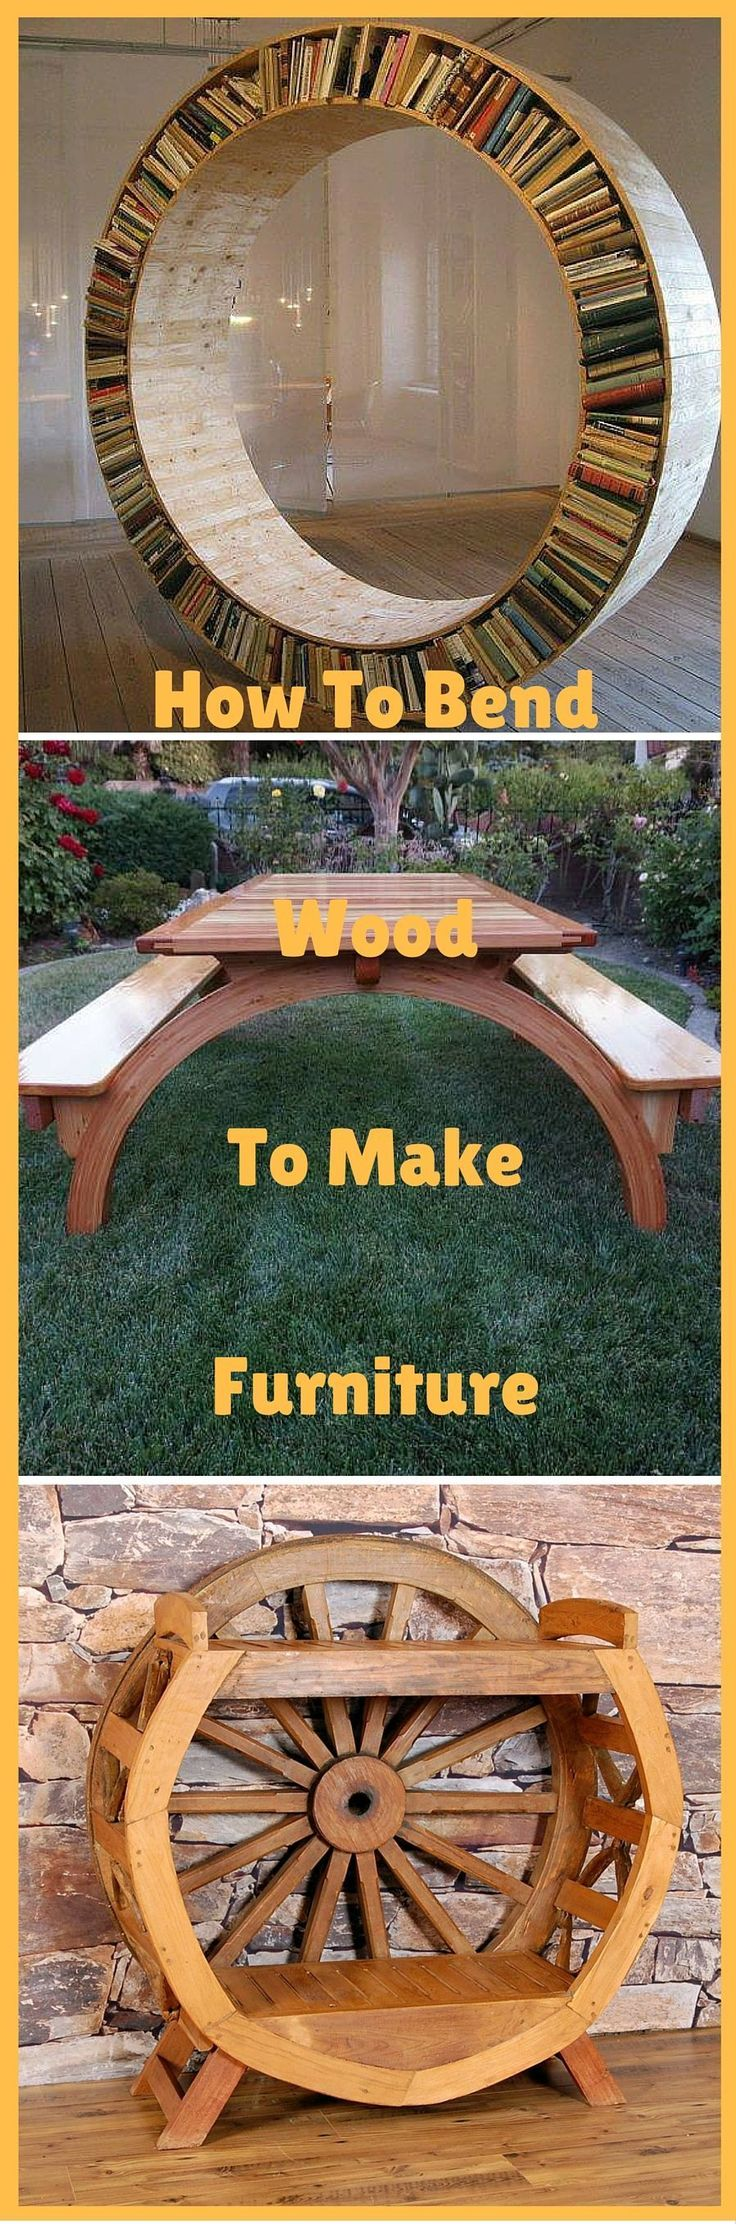 How To Bend Wood To Make Furniture: http://vid.staged.com/w4Qs #woodworkingbench